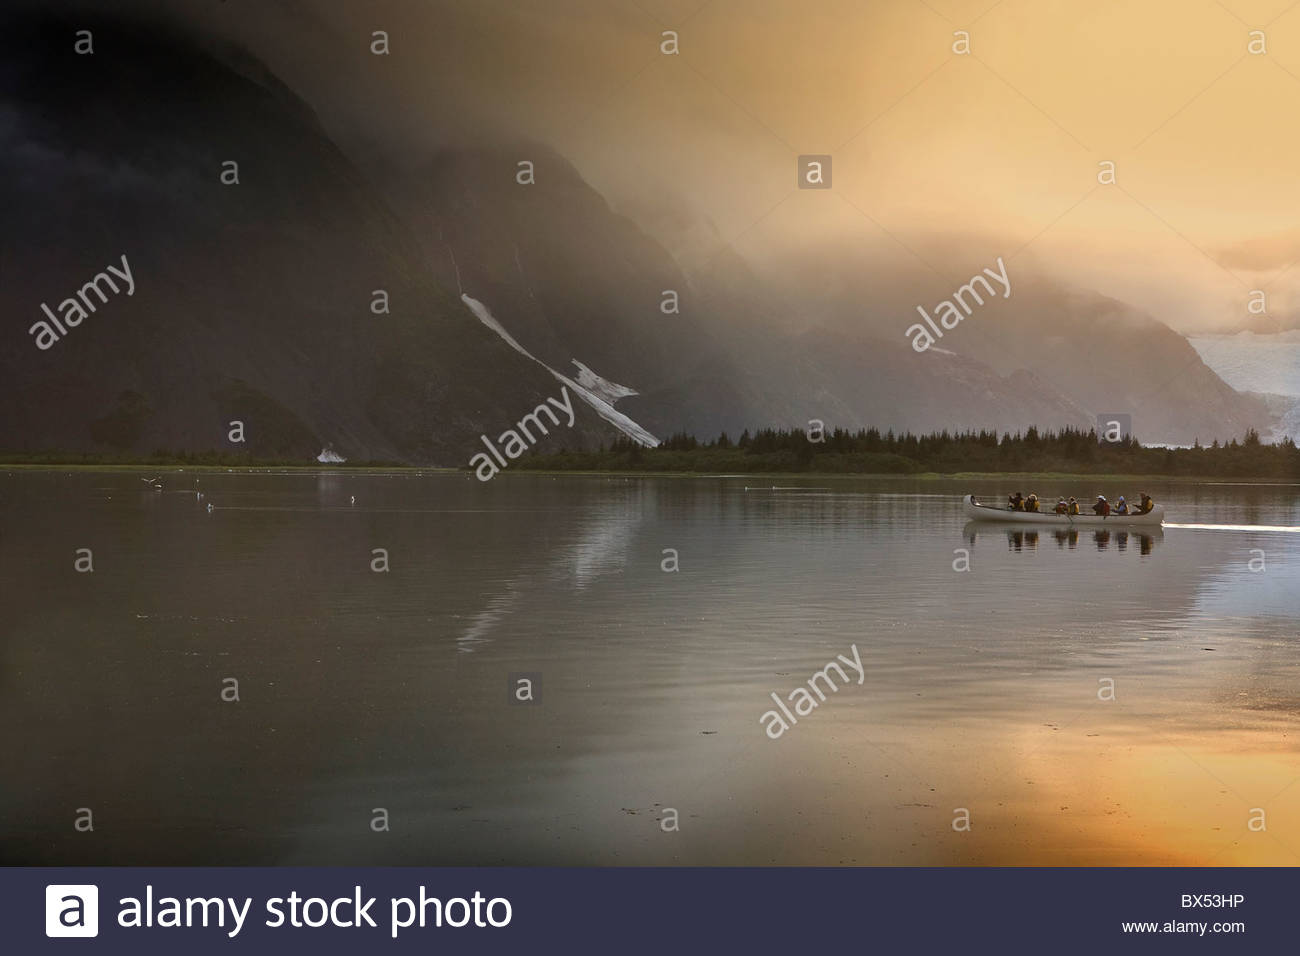 A canoe full of visitors makes its way across Pedersen Lagoon amidst some dramatic morning light. - Stock Image